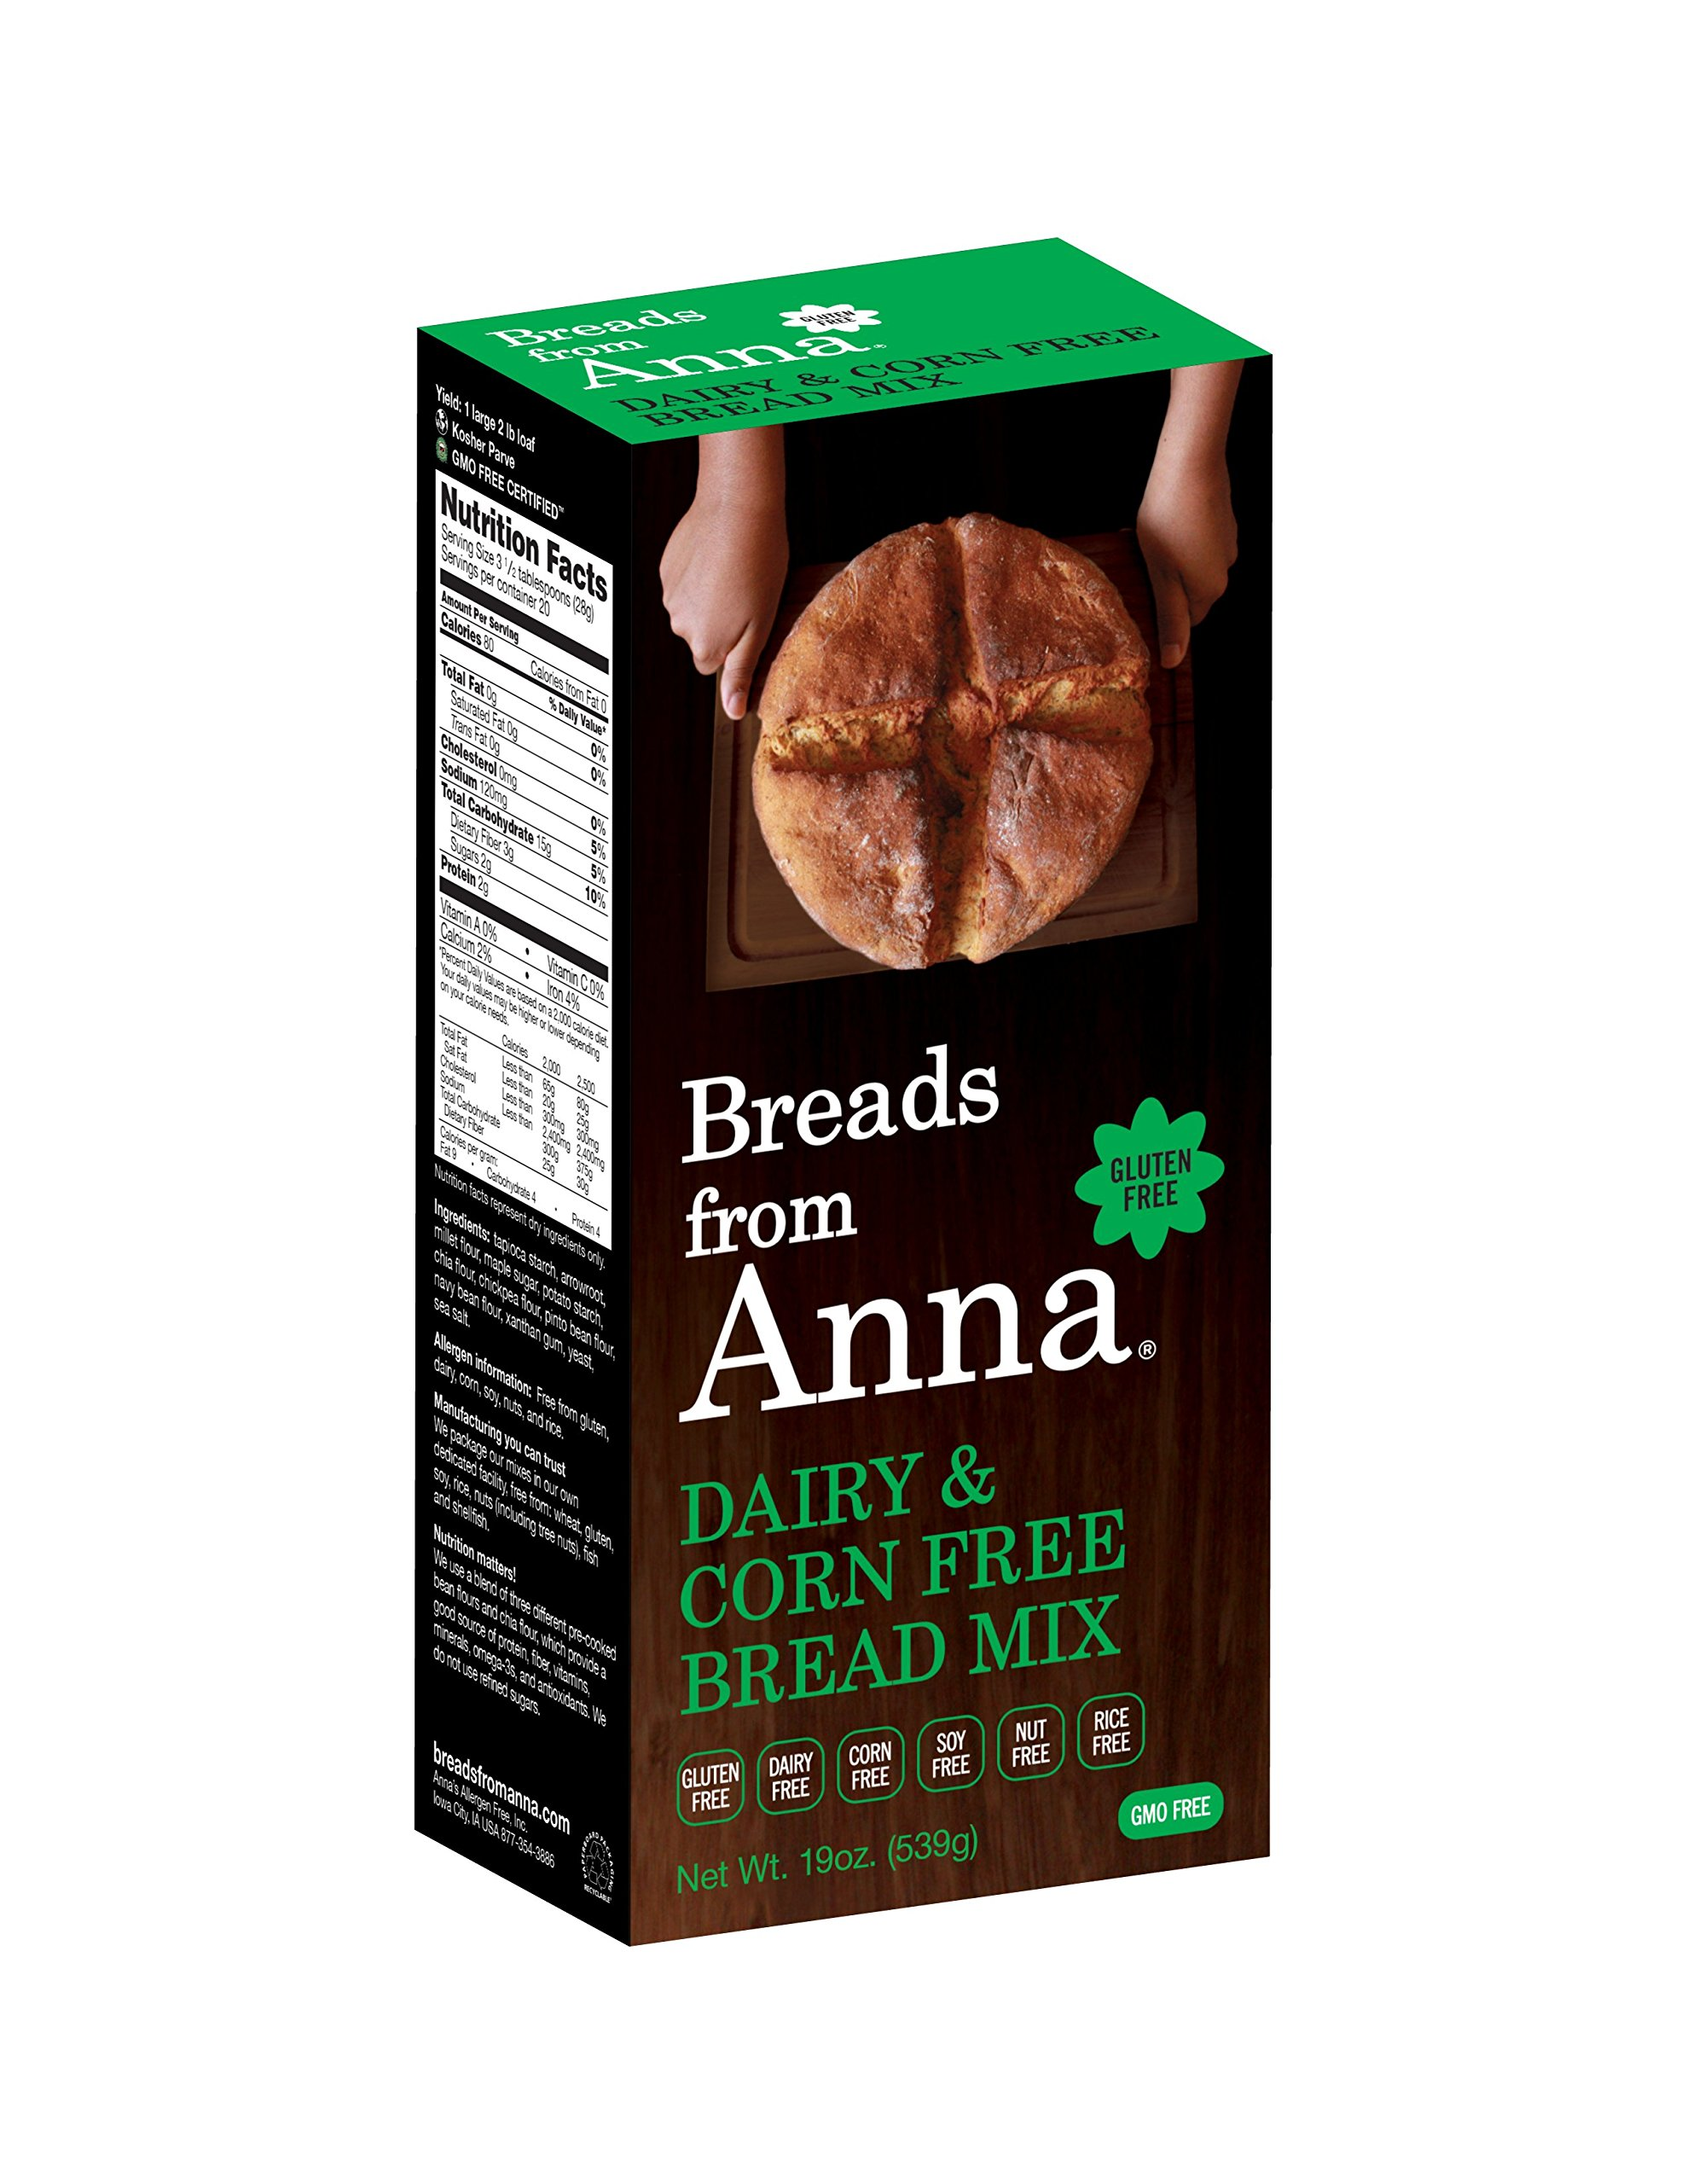 Breads from Anna Bulk 25lbs-Breads from Anna Dairy and Corn Free Bread Mix Gluten-free, Dairy Free, Corn Free, Soy Free, Rice Free, Nut Free